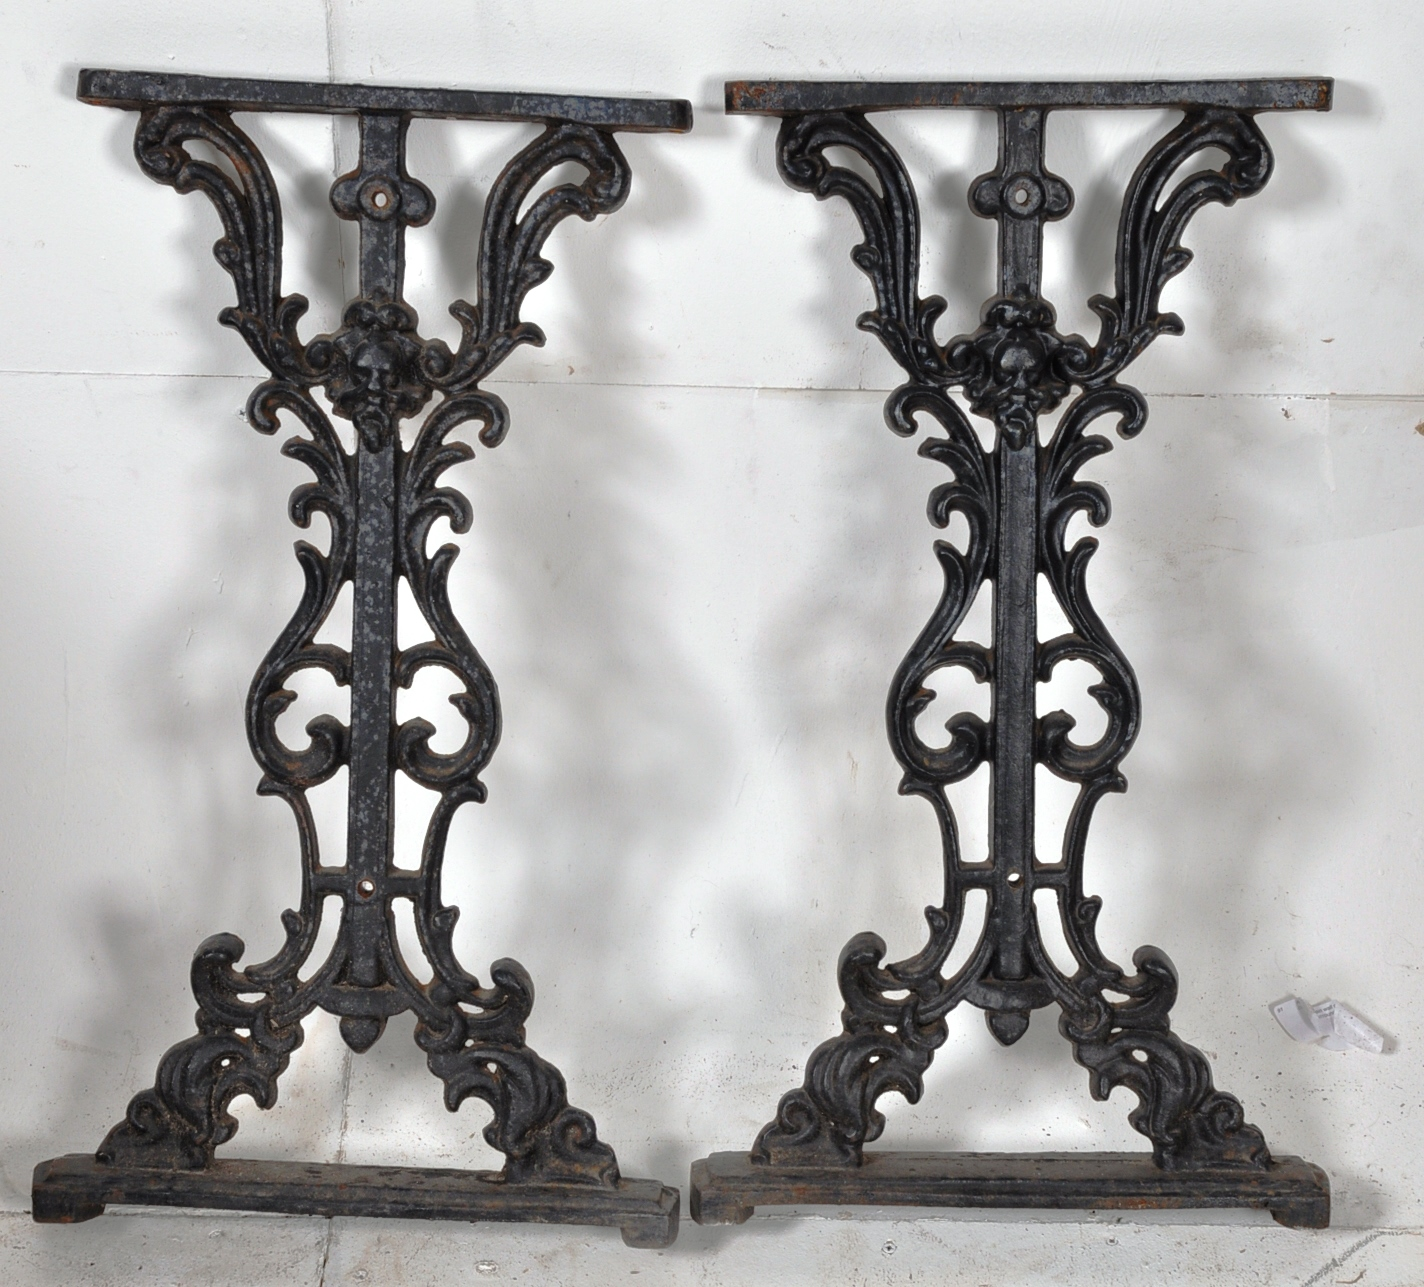 lot 486 2 victorian cast iron table legs of rococo form in the style